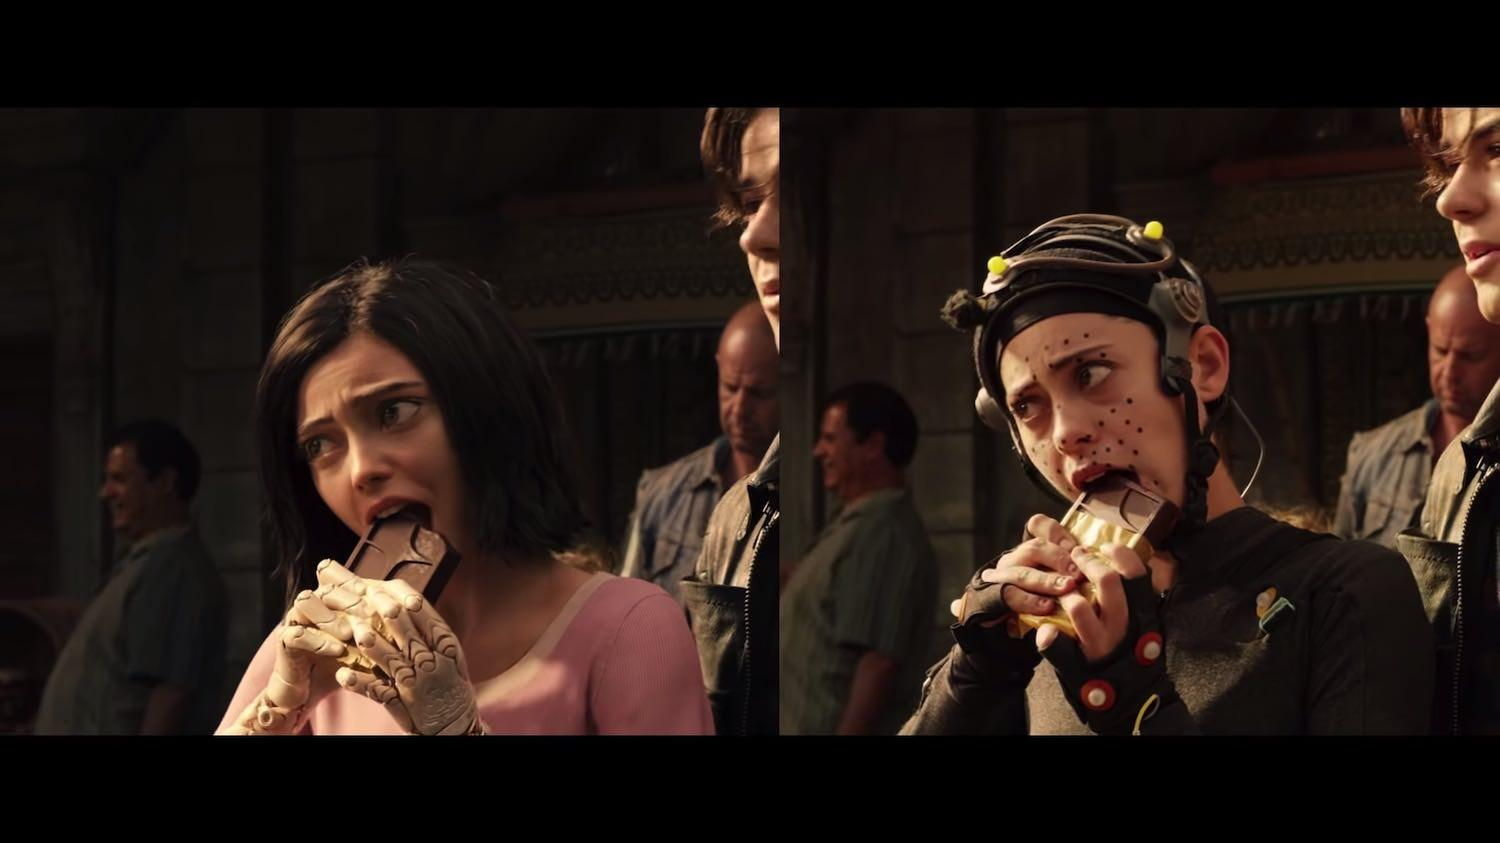 Alita Battle Angel Behind the Scenes with WETA 20th Century FOX 0 55 screenshot 1500x843